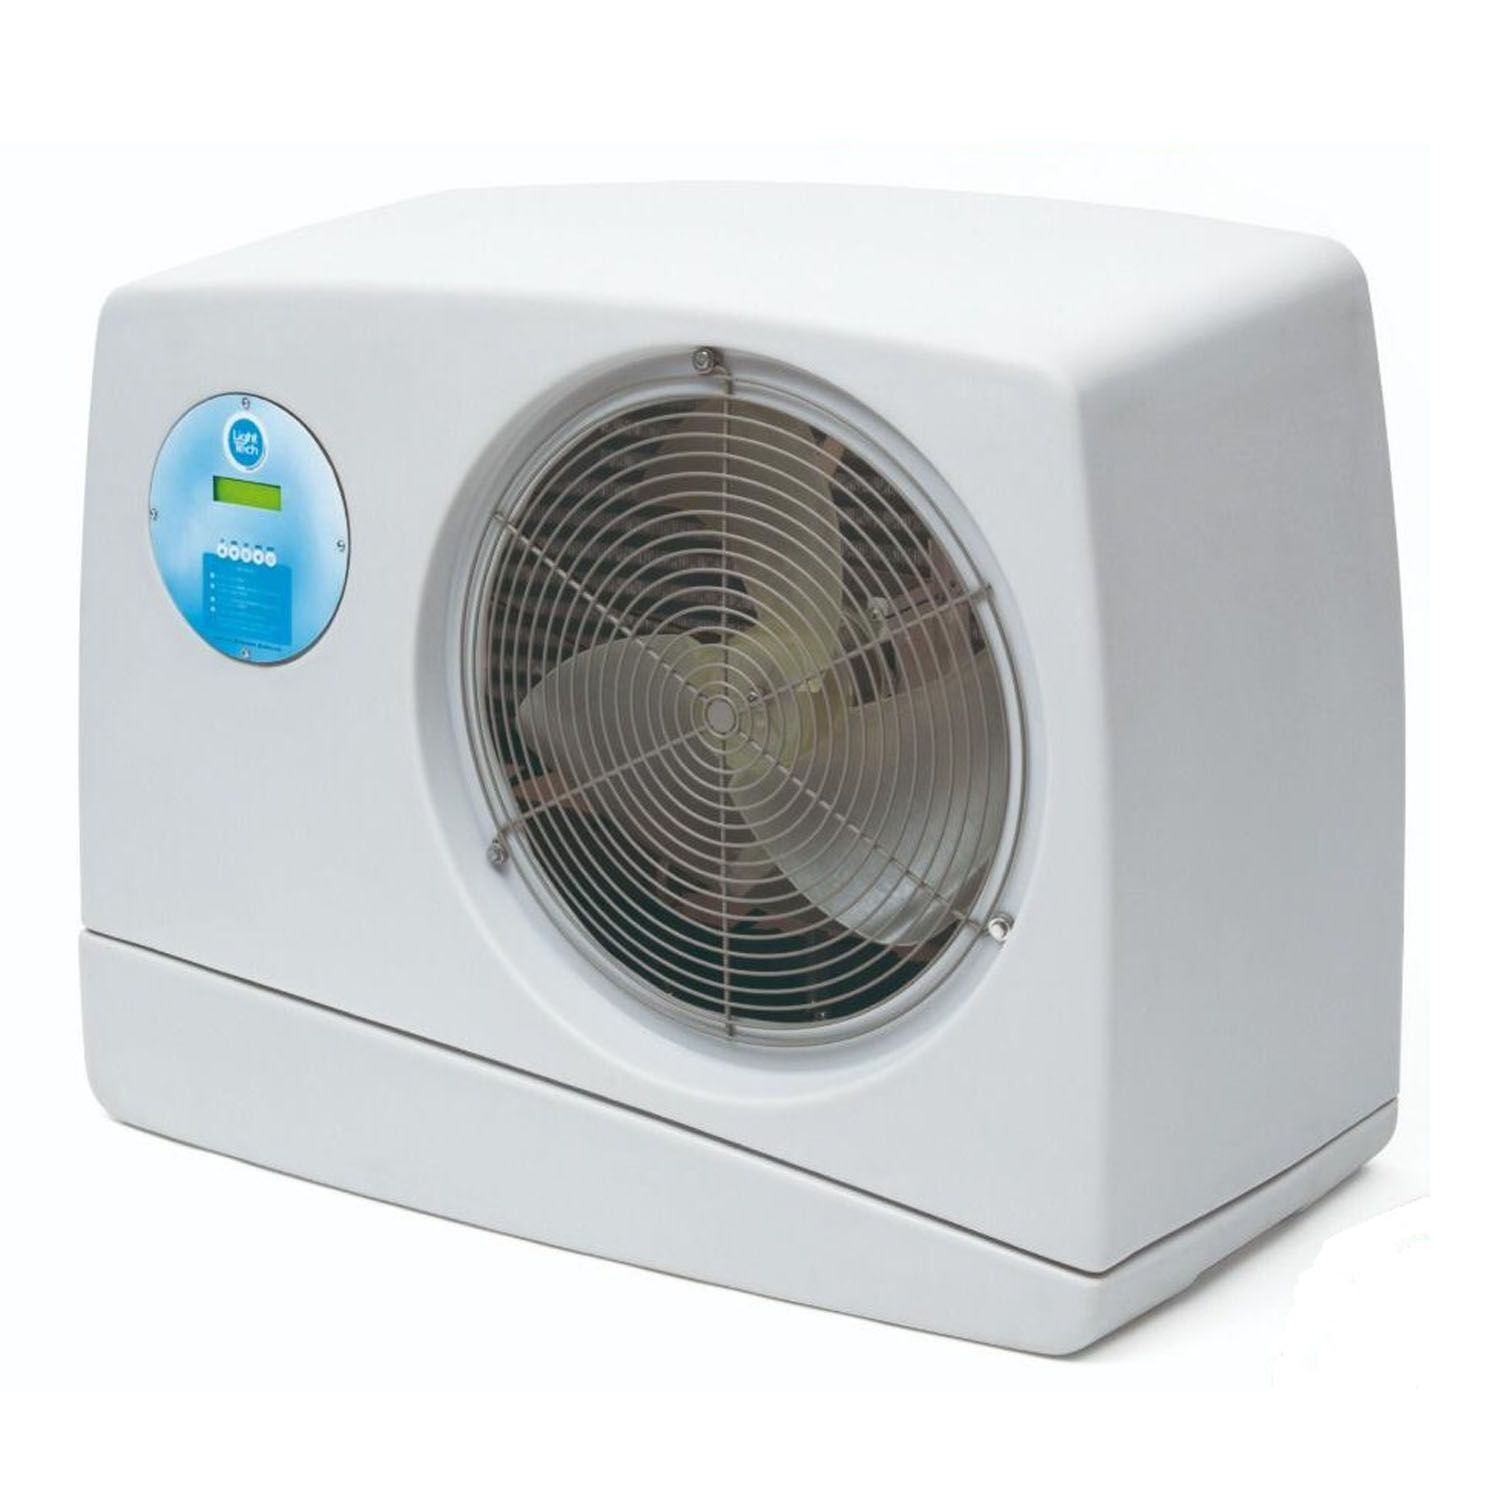 Trocador de Calor Aquecedor Piscina LT-50S - Light Tech